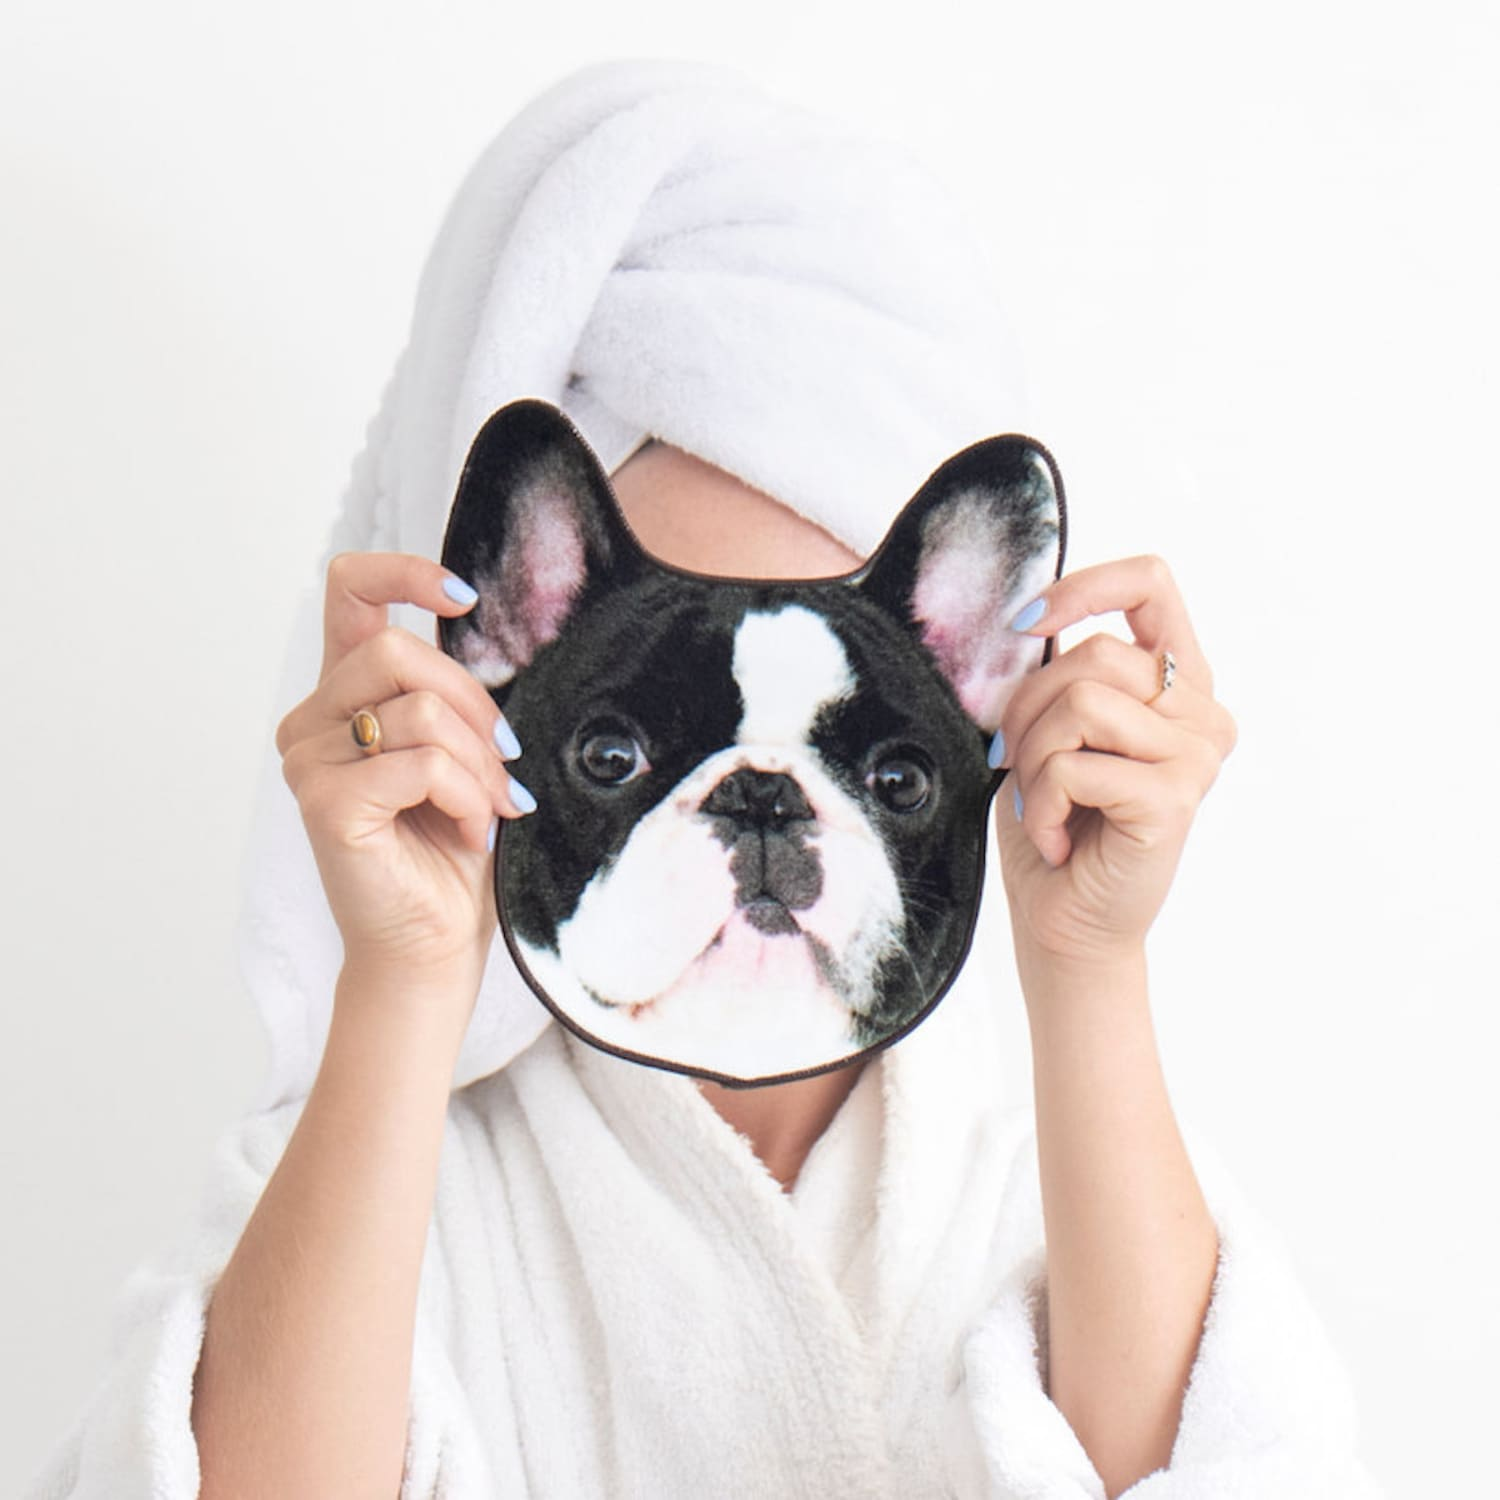 Here's How to Look Like Your Pet (& Wash Your Face Too)